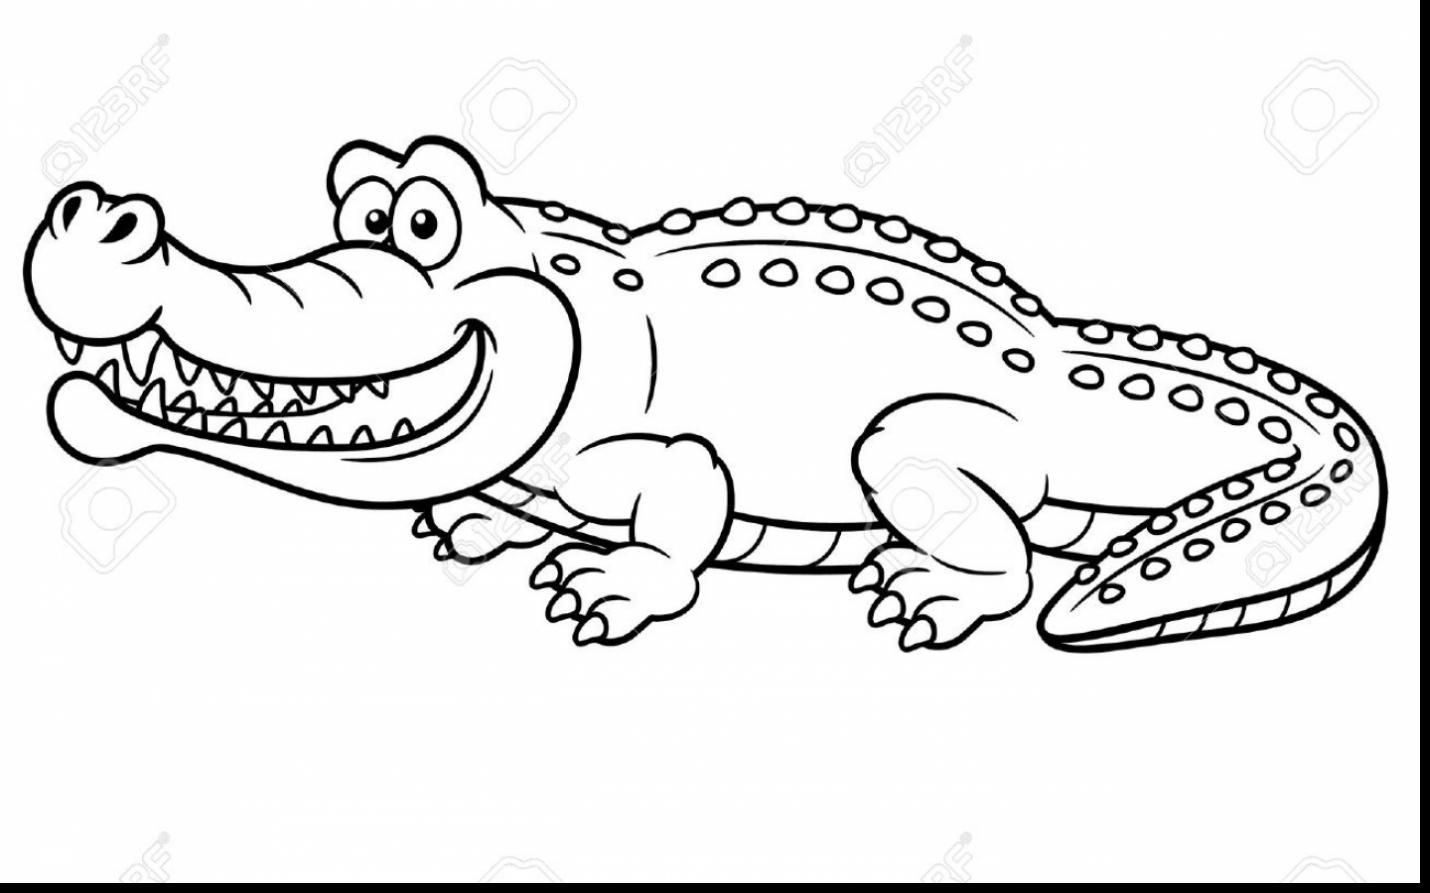 Surprising Alligator Coloring Pages With Alligator Coloring Page